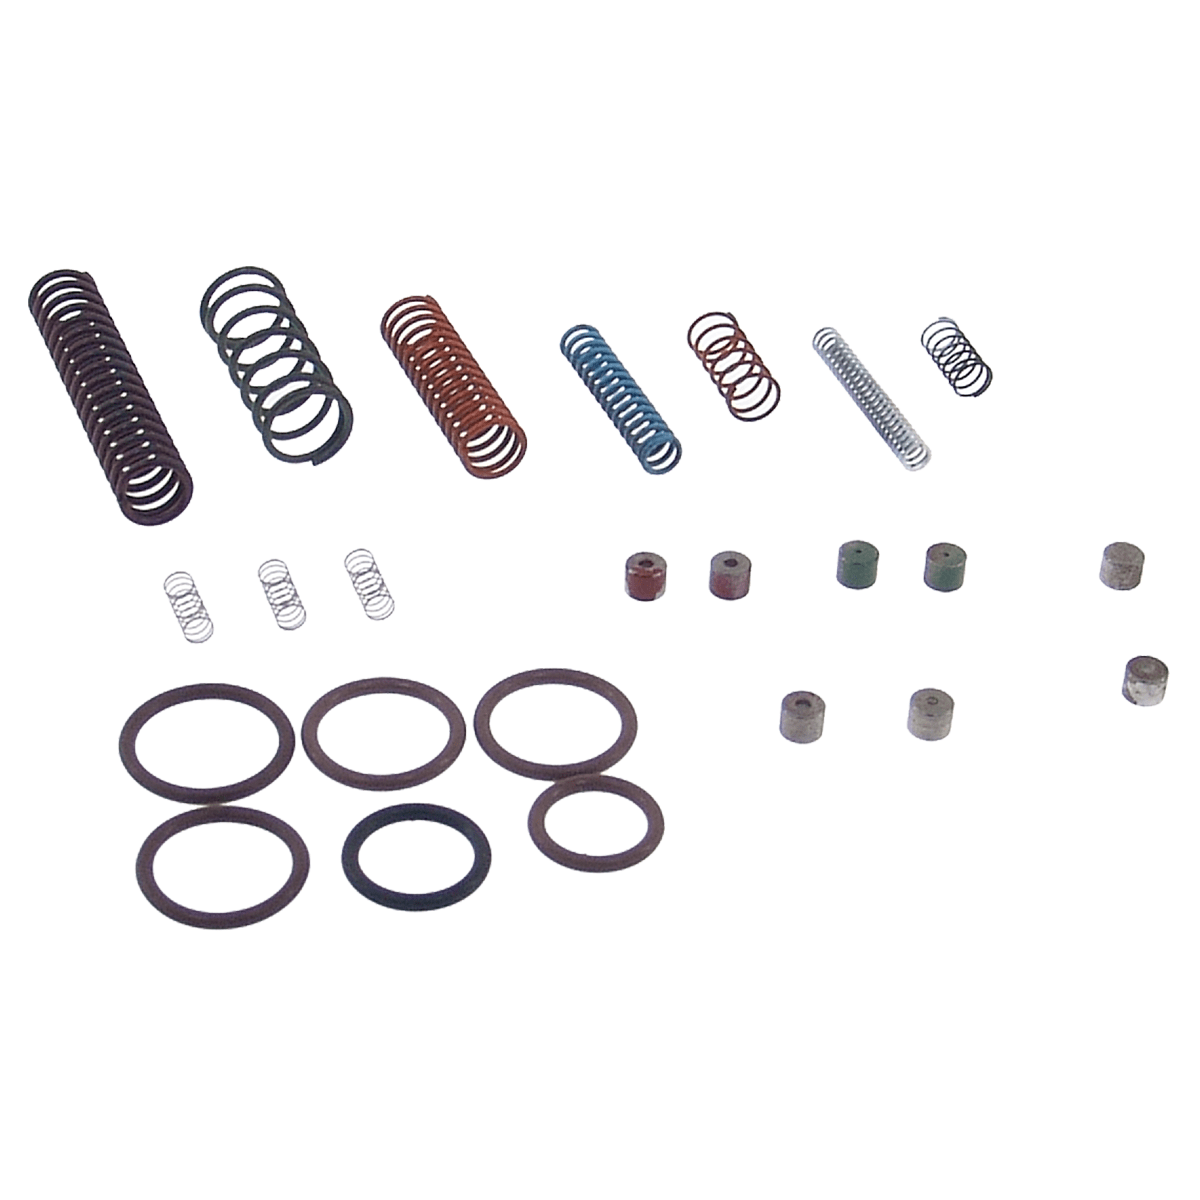 N4AEL SHIFT KIT® Valve Body Repair Kit